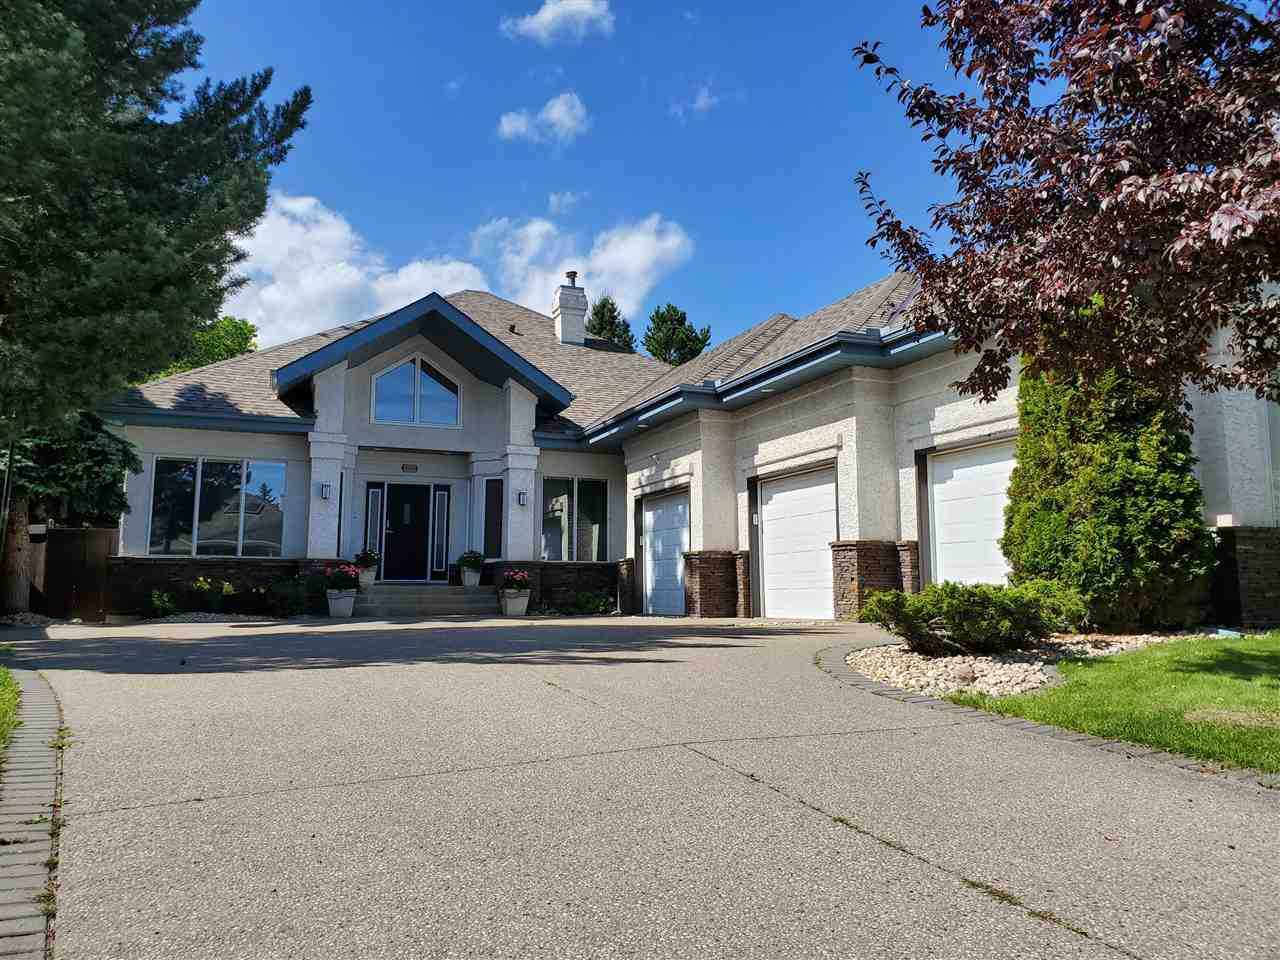 Main Photo: 880 WHEELER Road in Edmonton: Zone 22 House for sale : MLS®# E4176404